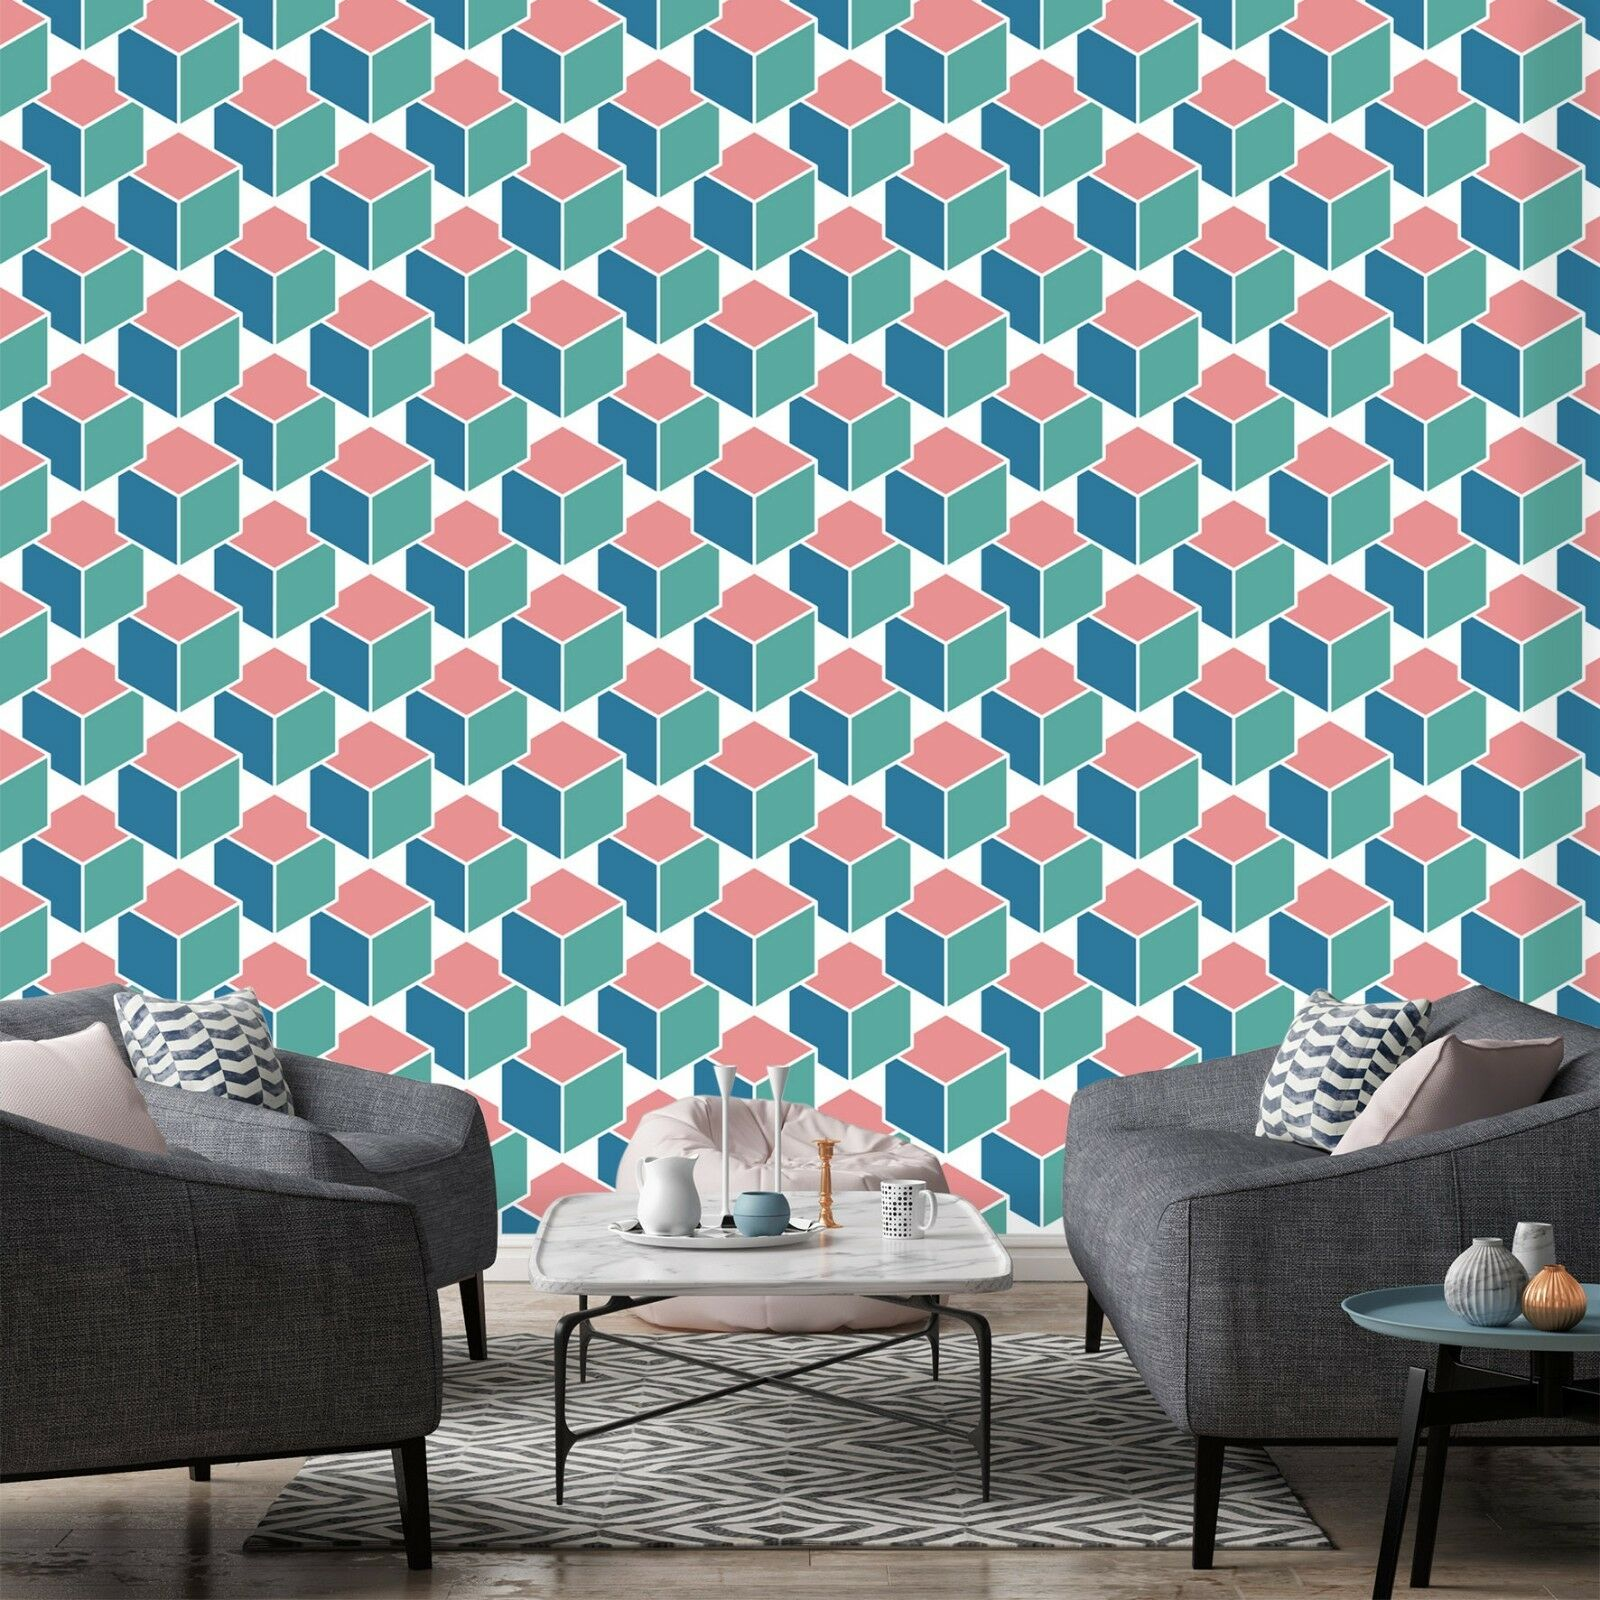 3D Pink bluee 703 Wall Paper Print Wall Decal Deco Indoor Wall Murals US Summer